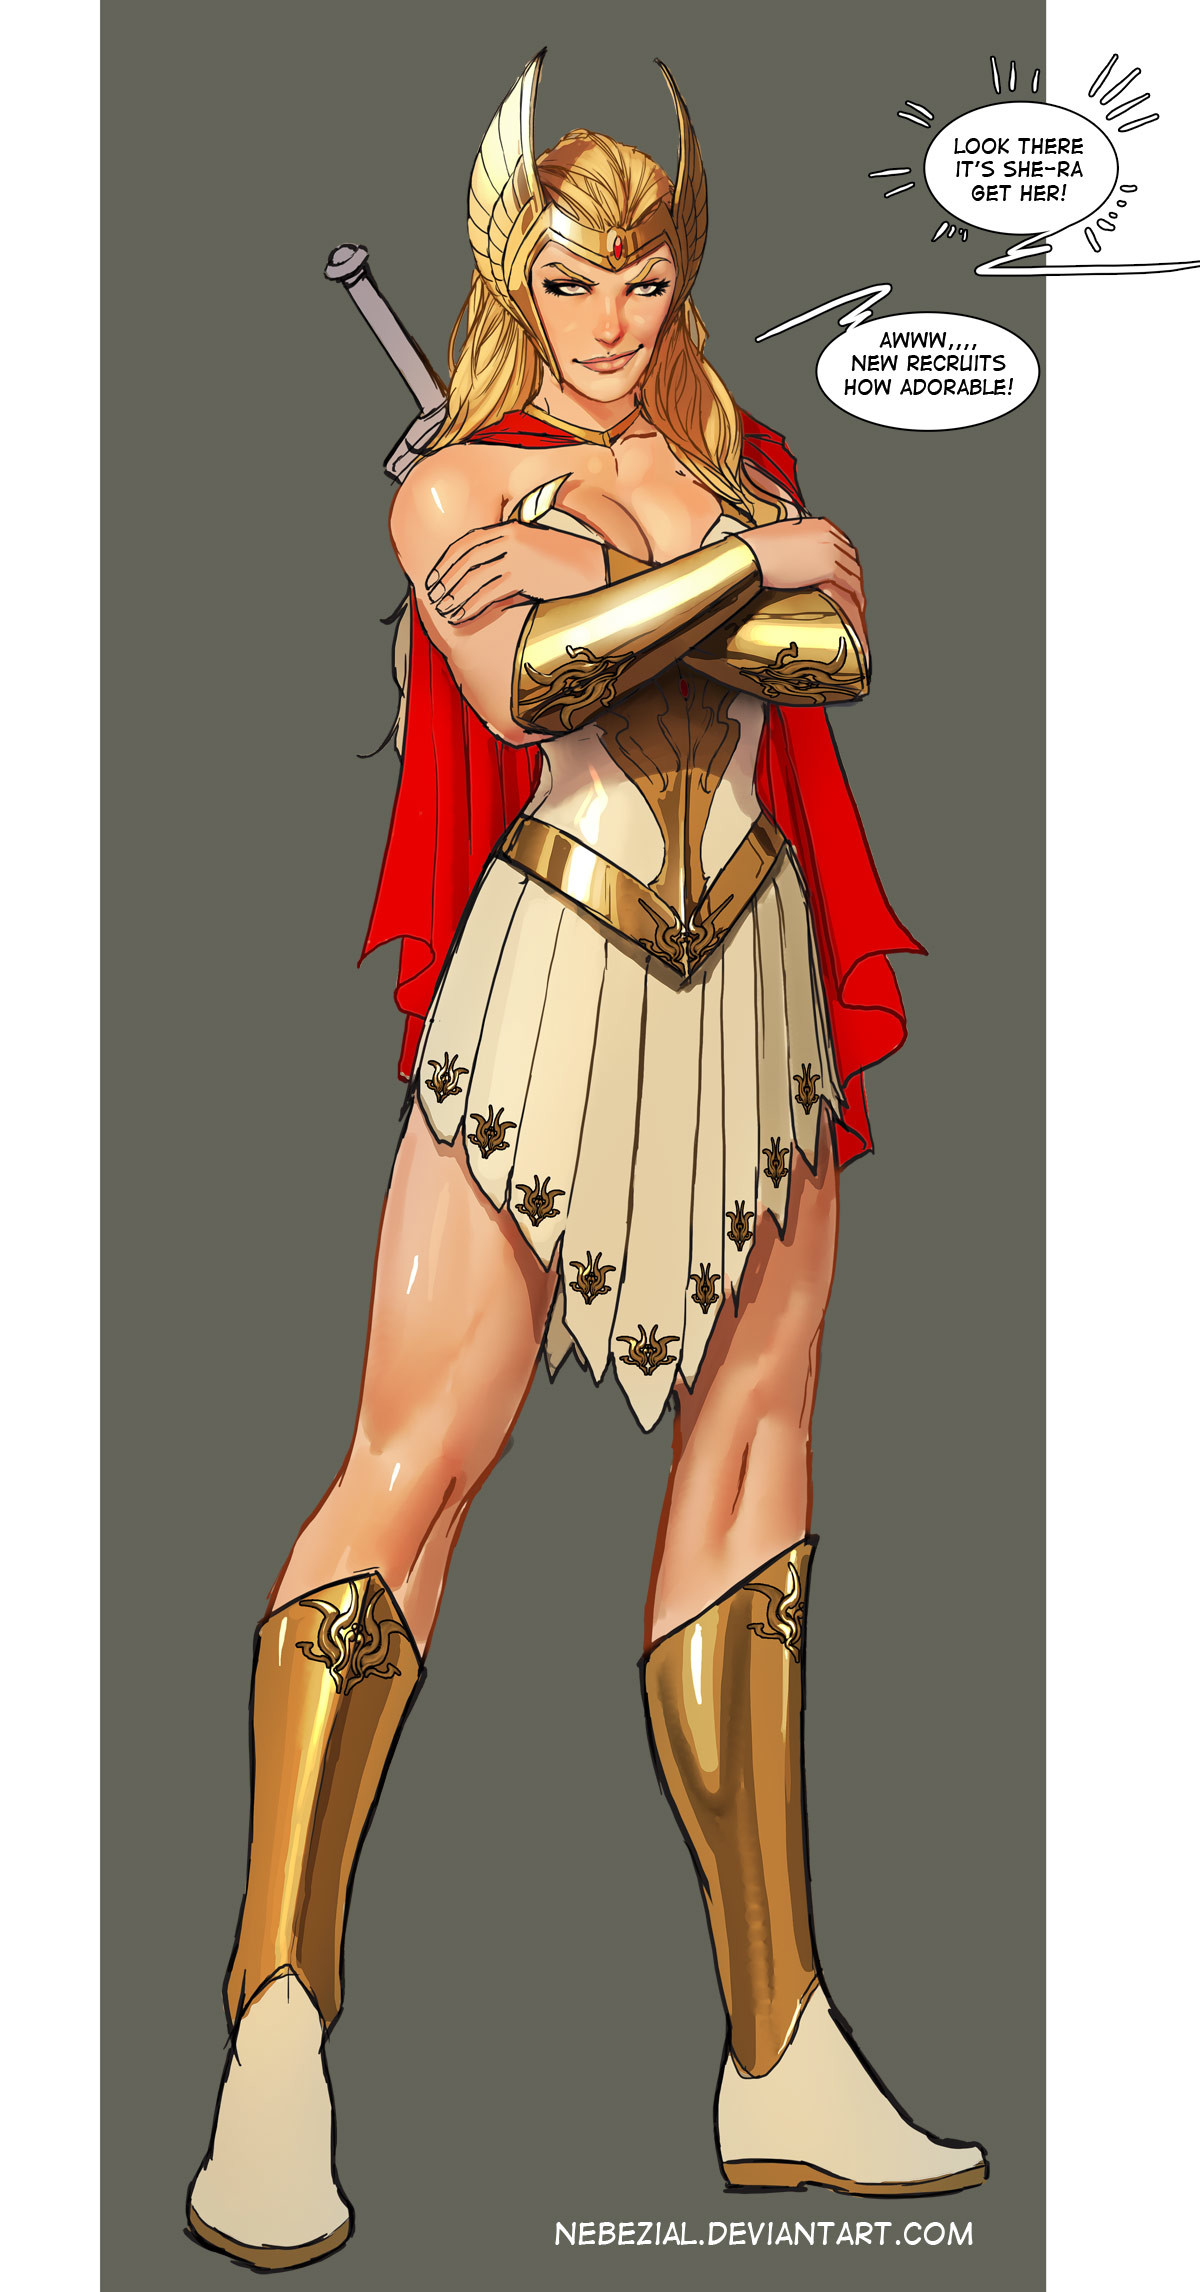 Res: 1200x2292, nebezial 2,609 189 she-ra...iiis not impressed...im on a roll